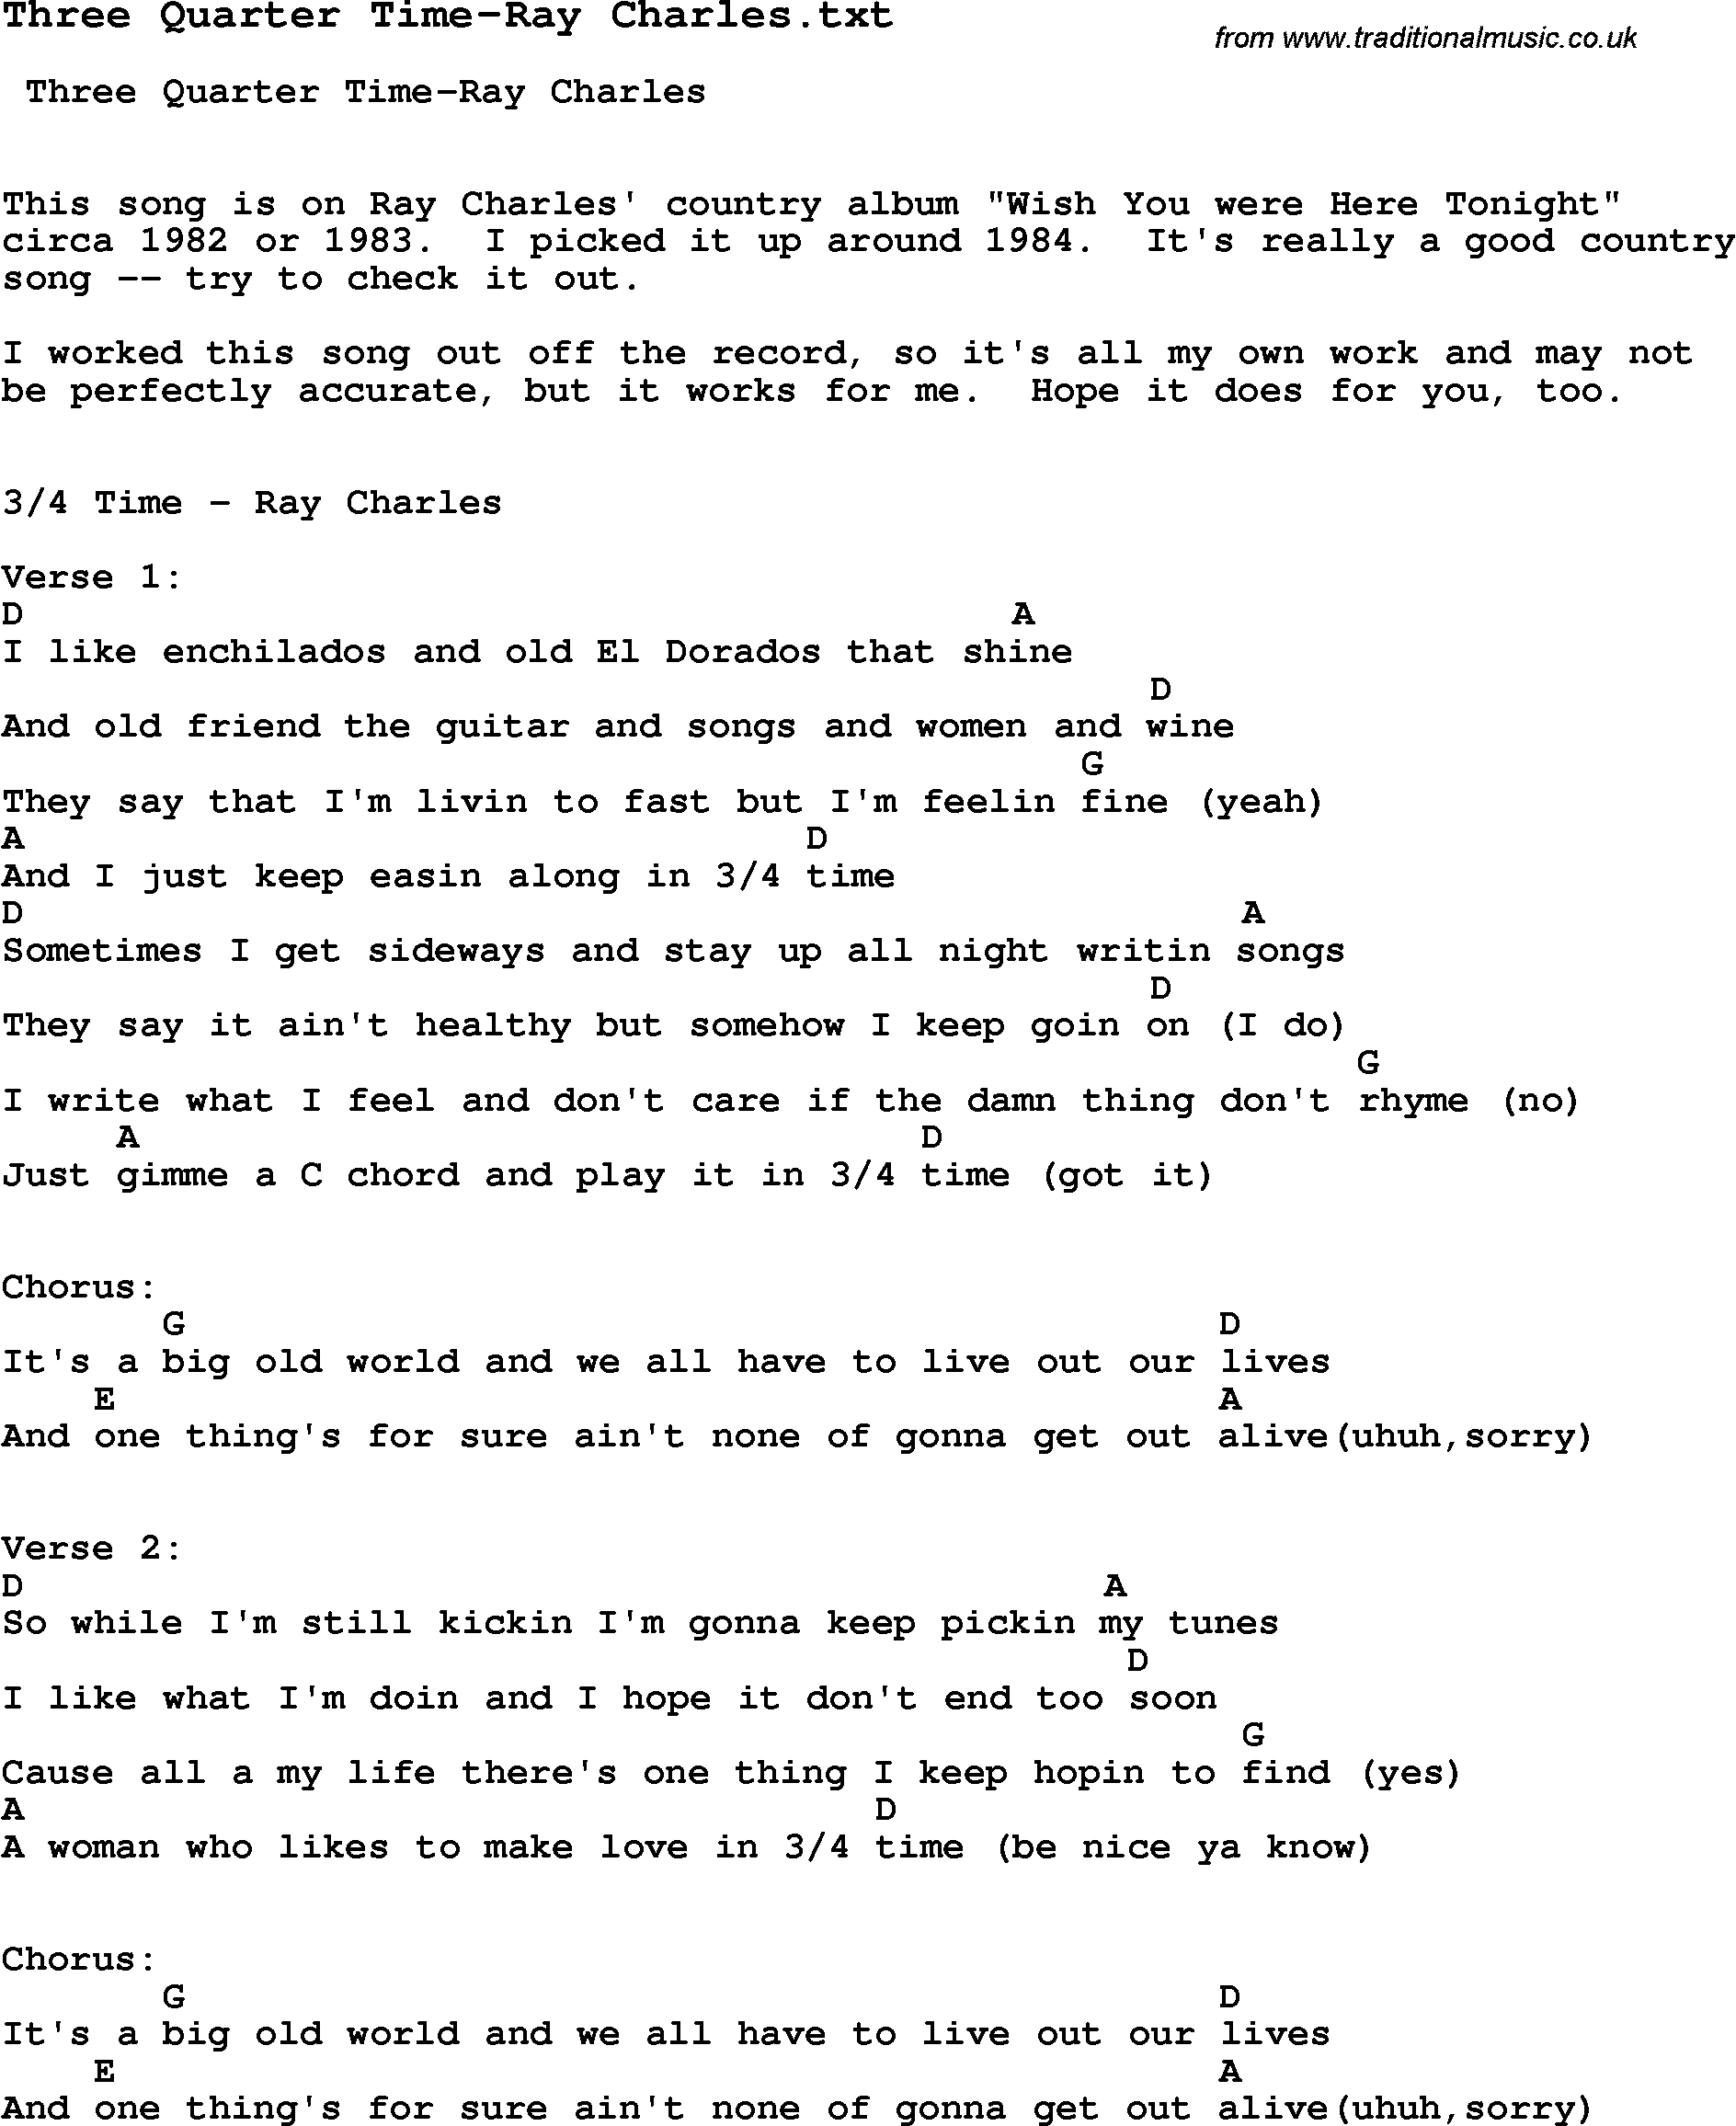 Jazz Song - Three Quarter Time-Ray Charles with Chords, Tabs and Lyrics from top bands and artists